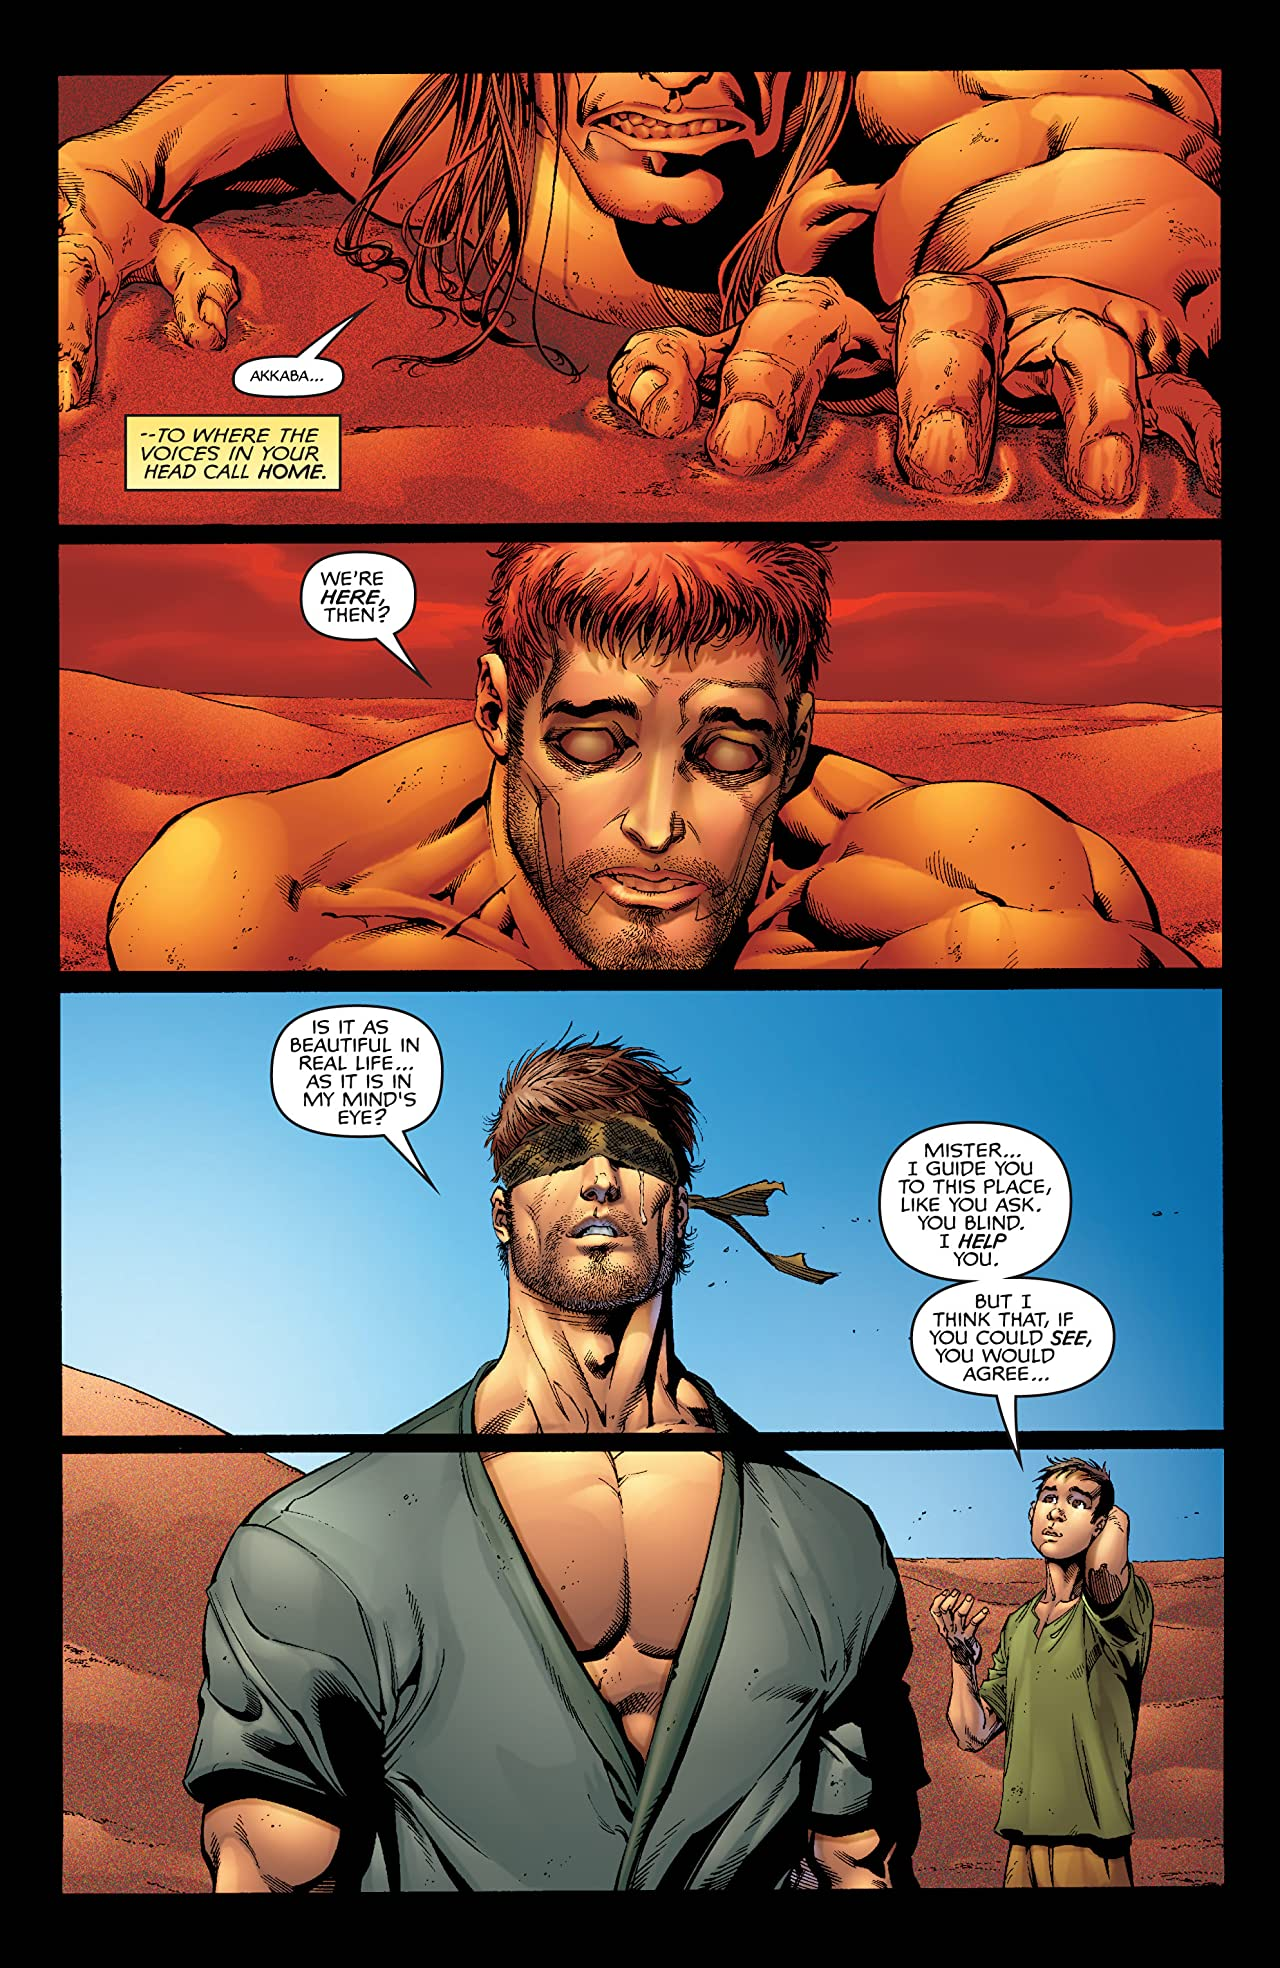 X-Men: The Search For Cyclops #4 (of 4)